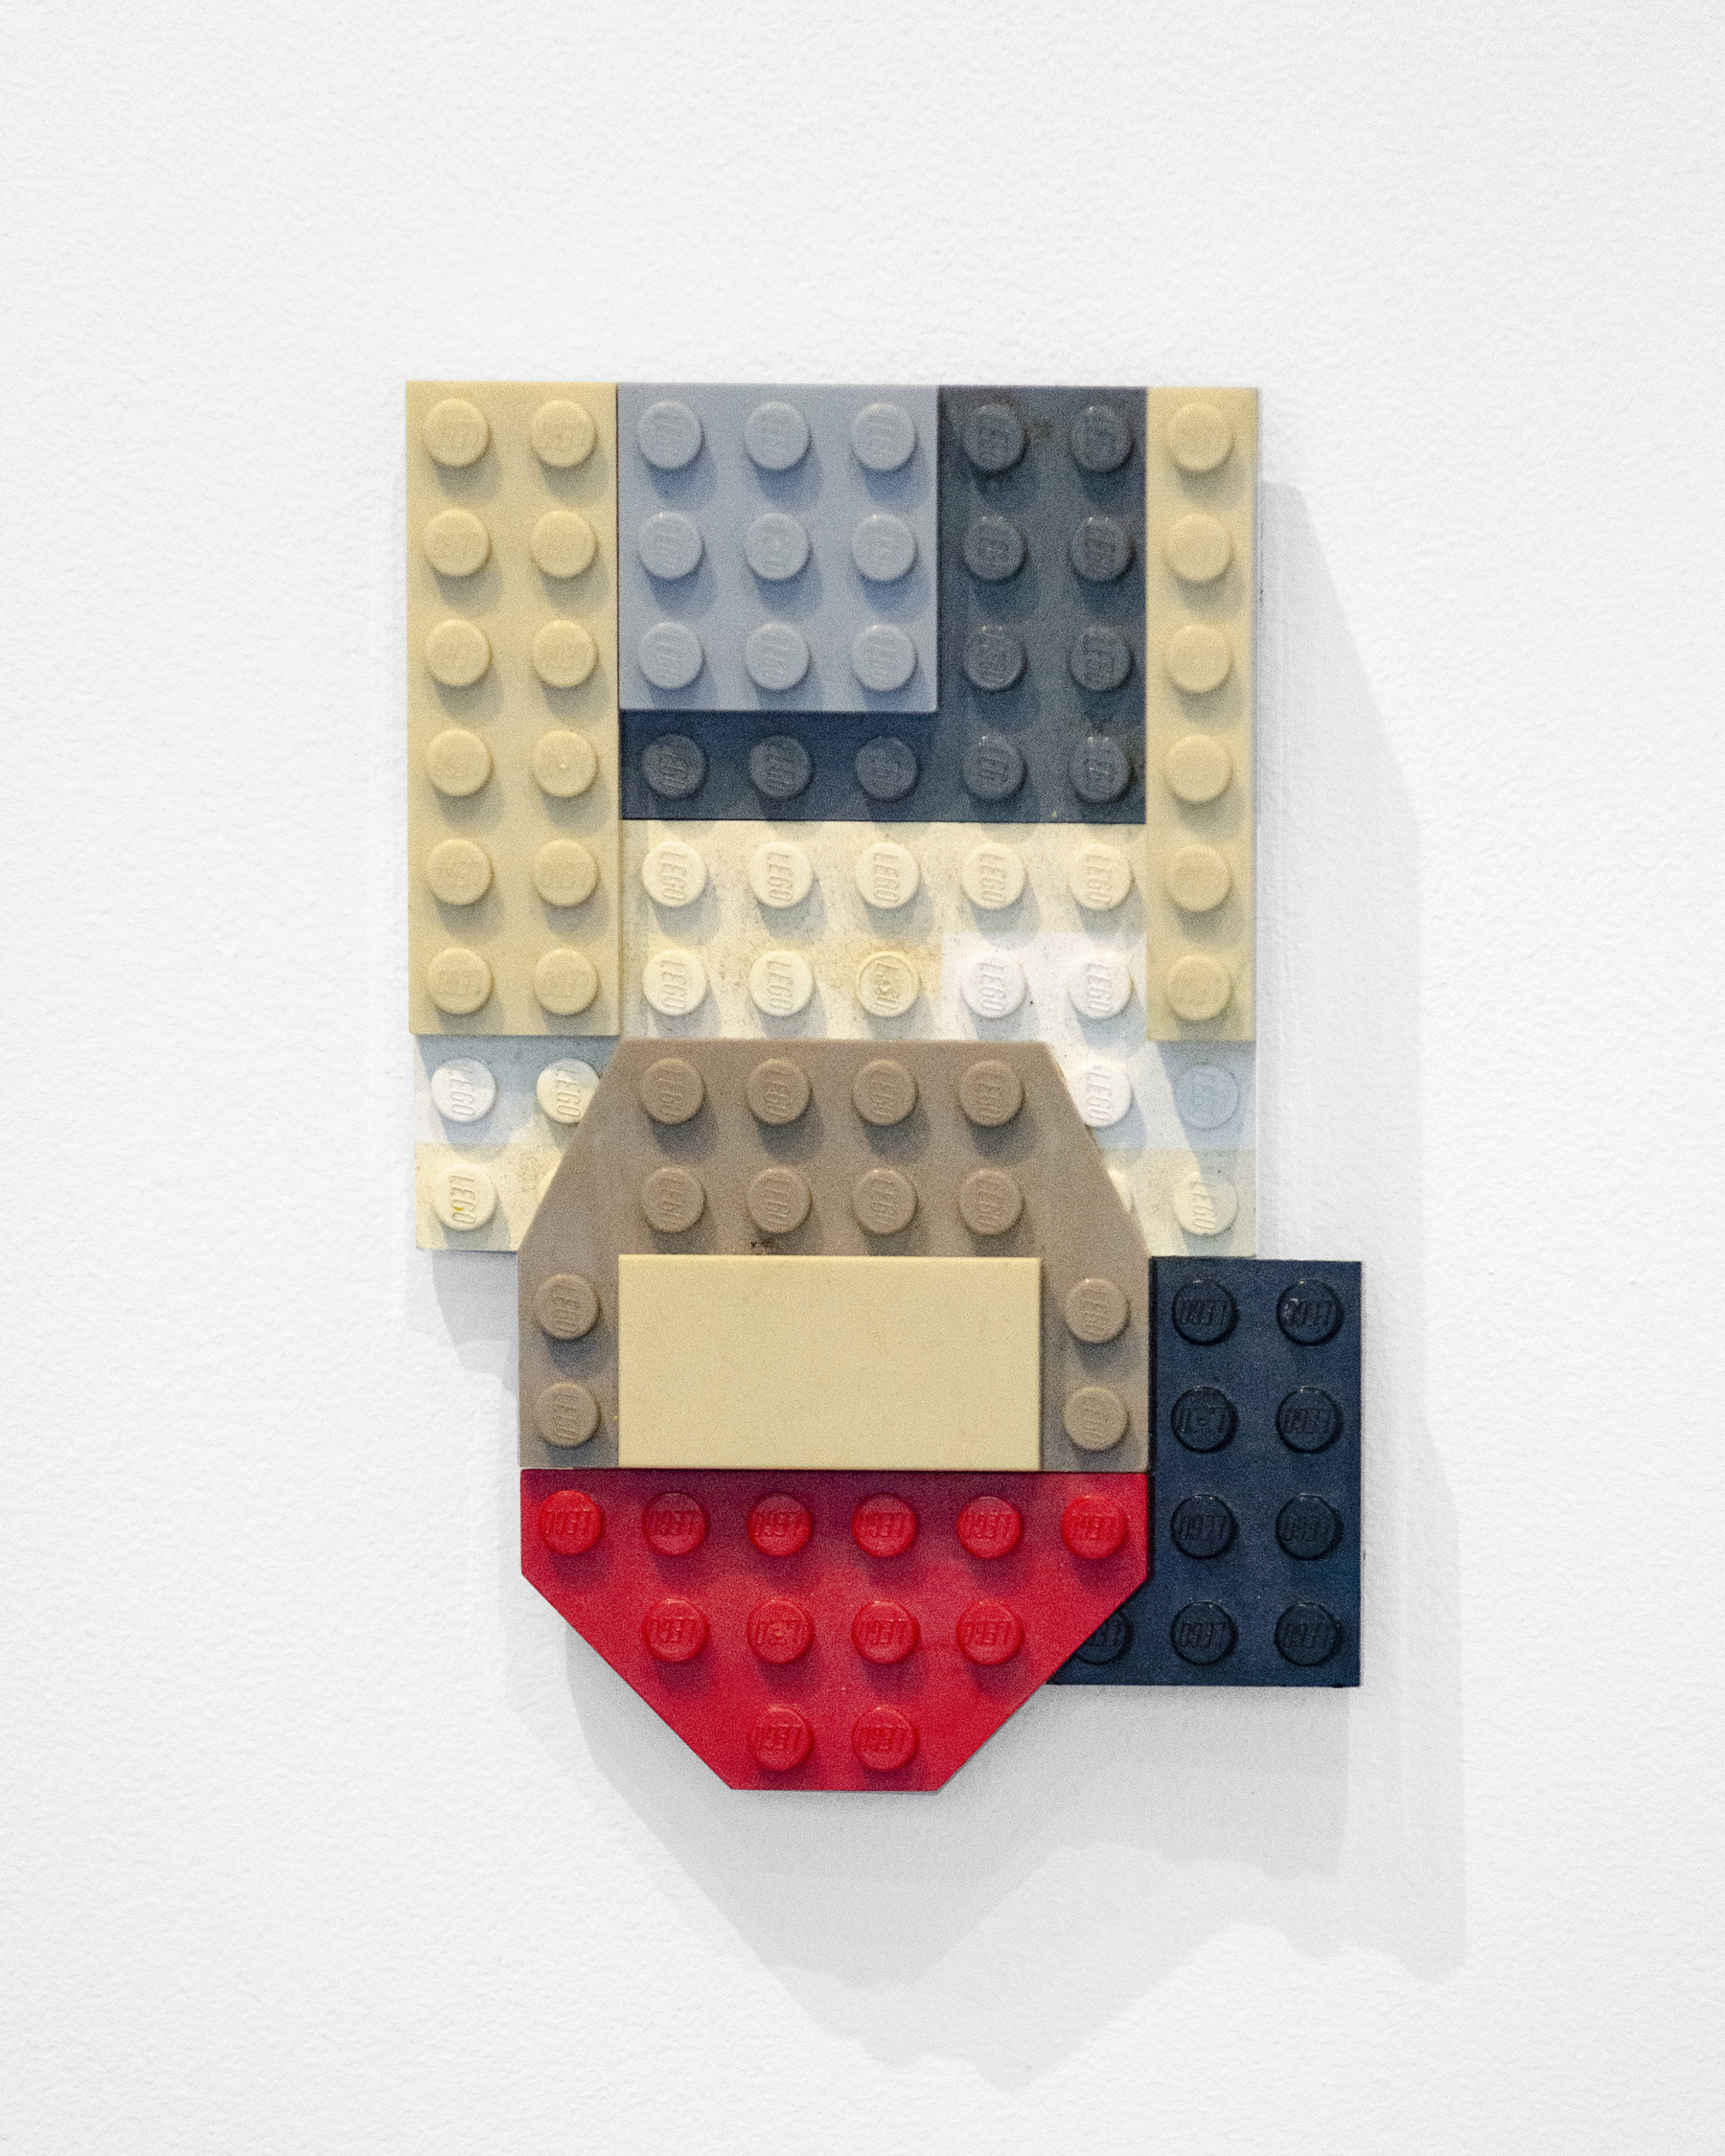 Marlowe Broomberg,  Lego Painting #1 (from Lego Paintings Series) , 2019 Lego pieces, 4 x 3 x 1 inches (10 x 7.5 x 2.5 cm), Unique edition